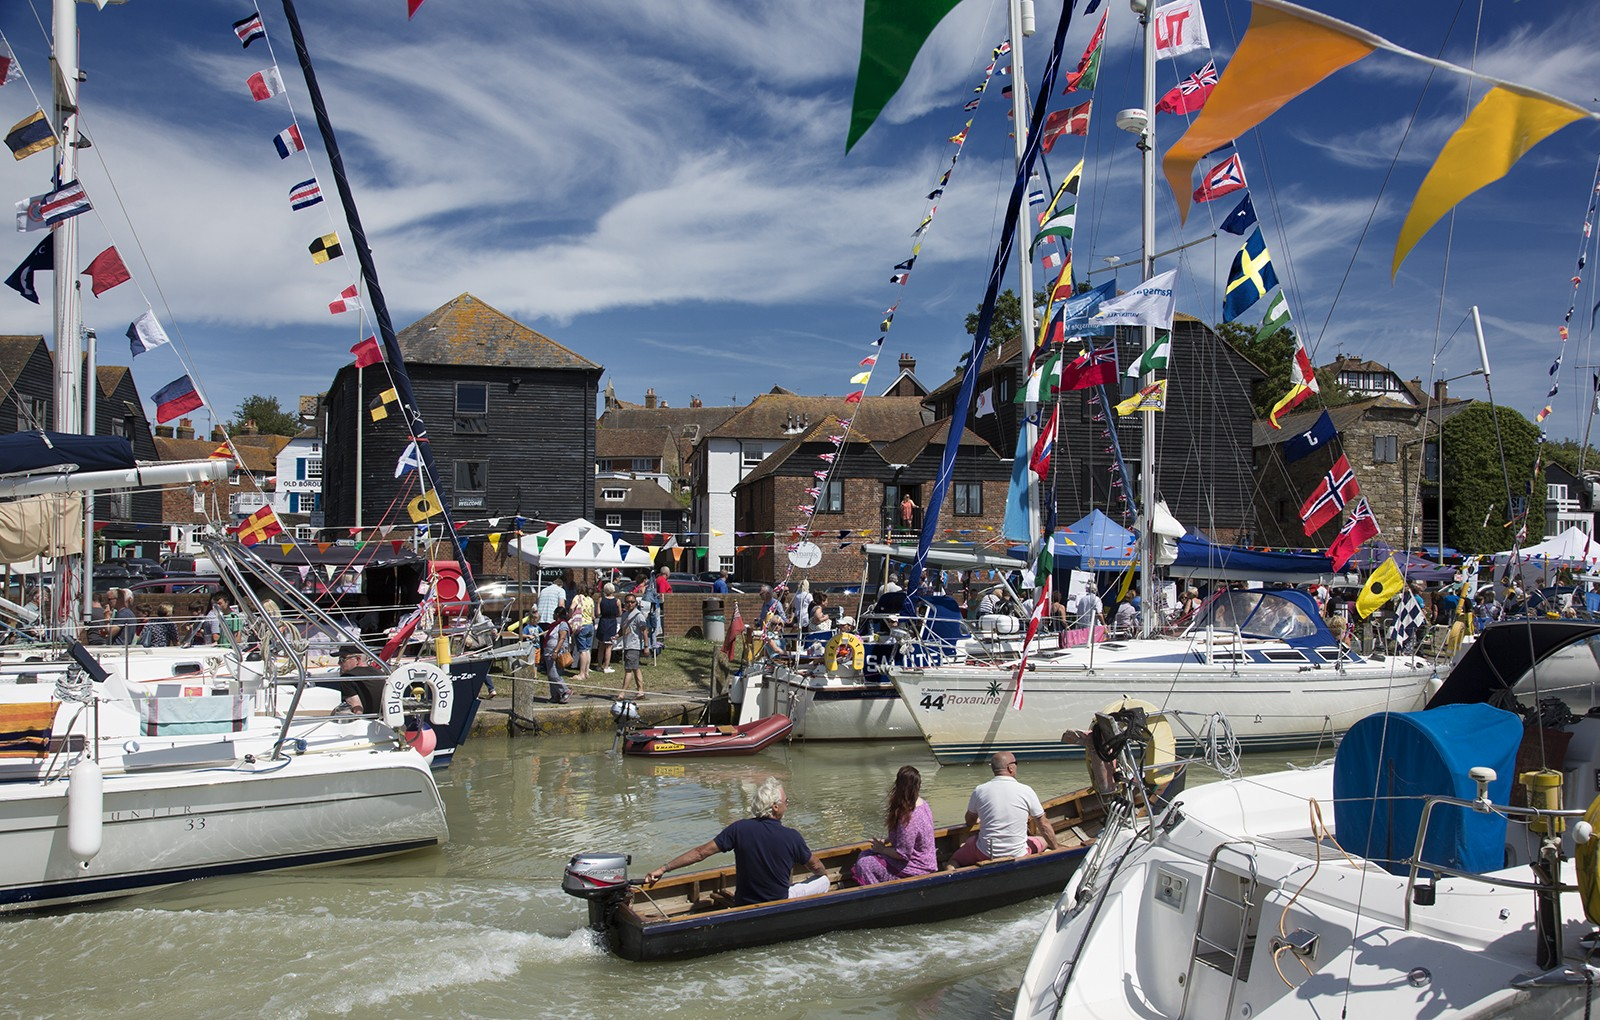 The great Rye Festival